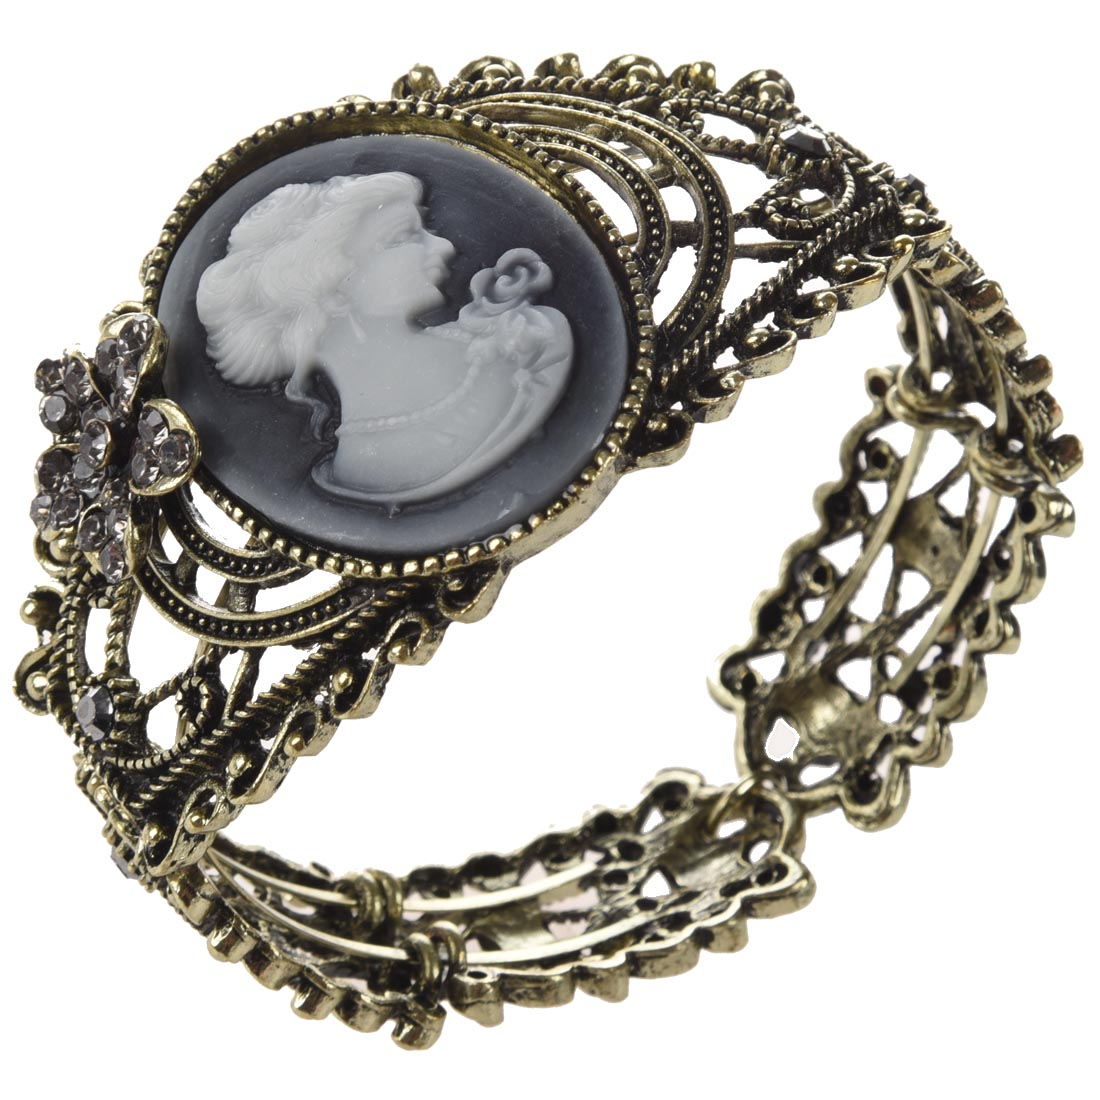 Vintage Hollow Out Queen Statue Carving Bangle Cuff Cameo Bracelet